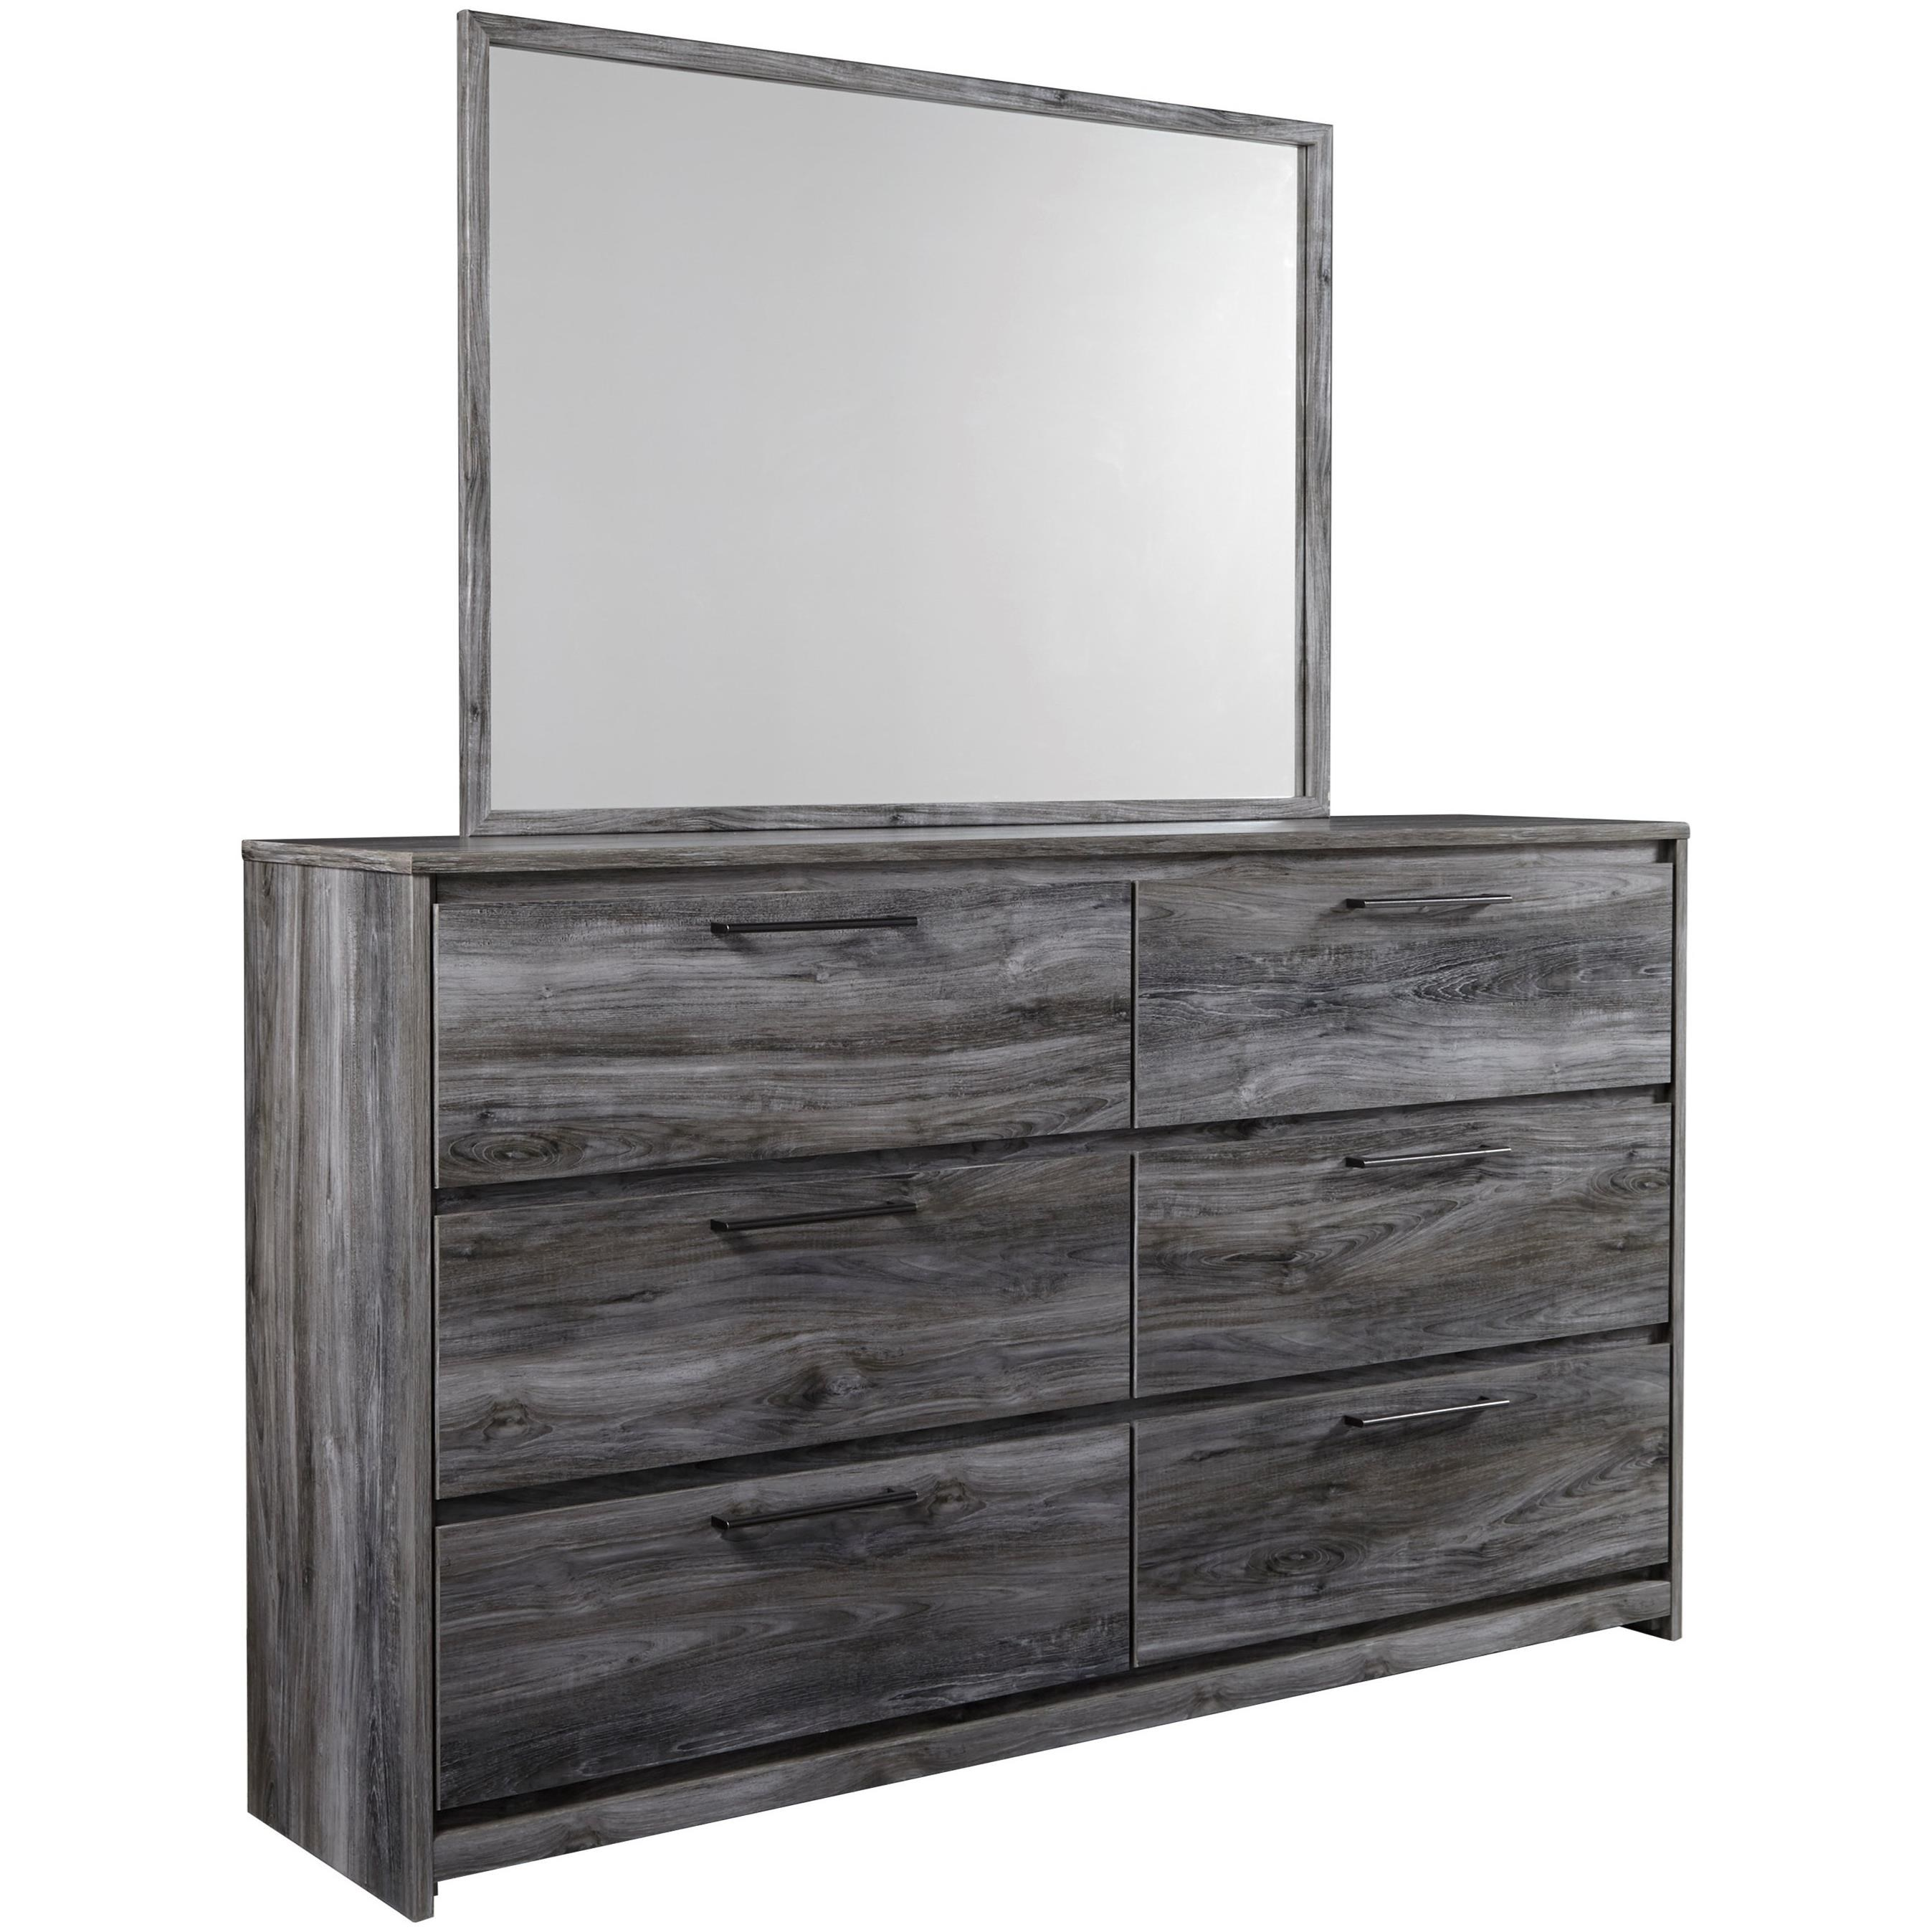 Baystorm Dresser & Mirror by Signature Design by Ashley at Northeast Factory Direct